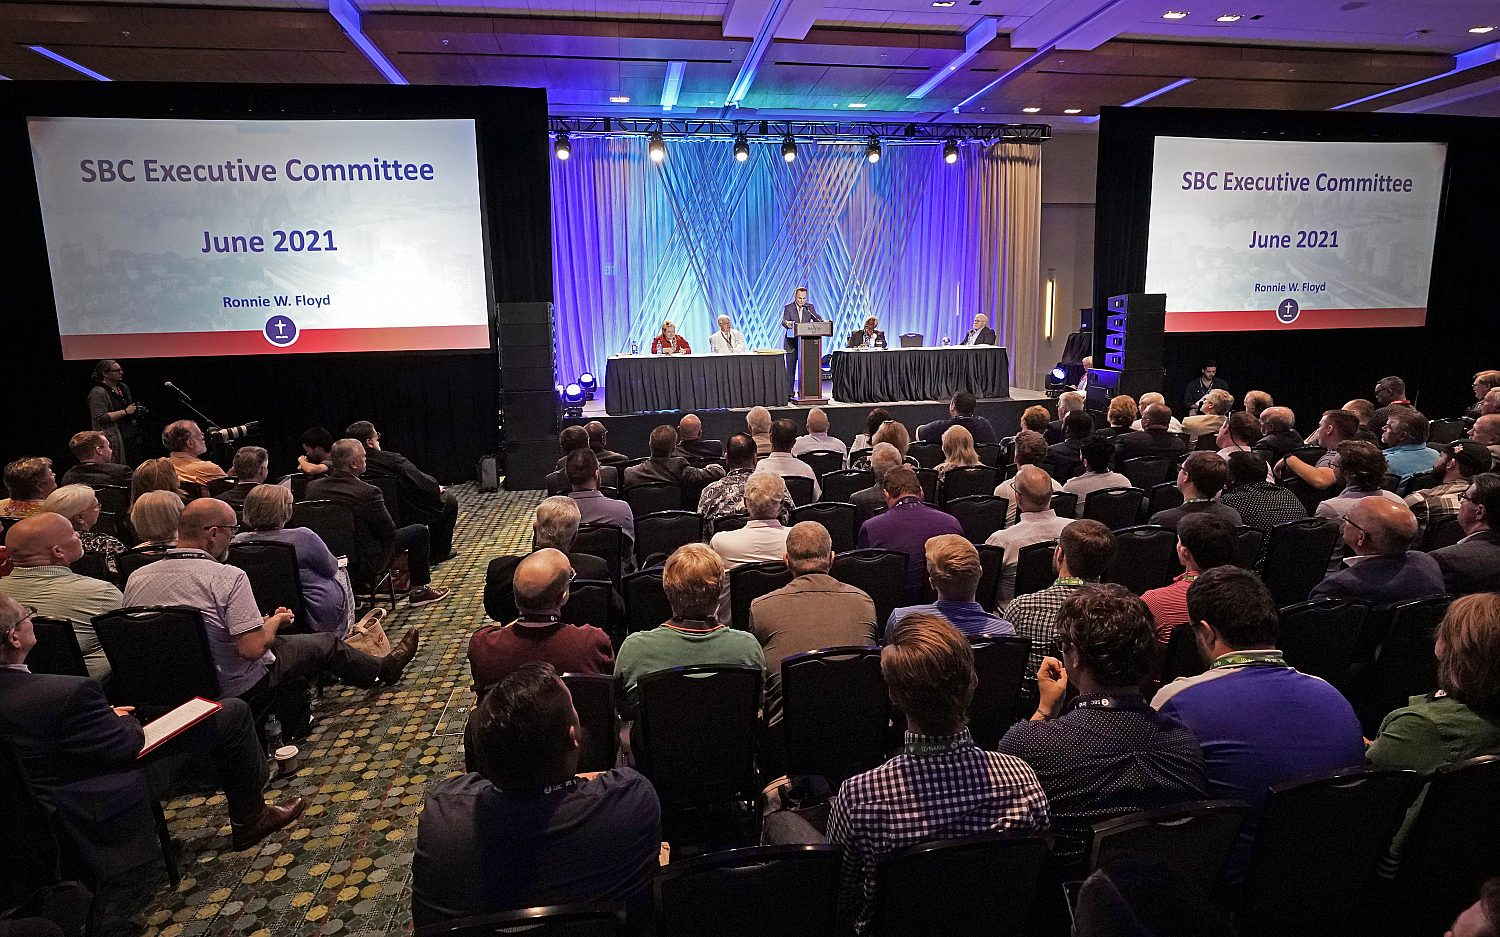 SBC leaders approve more openness in abuse investigation